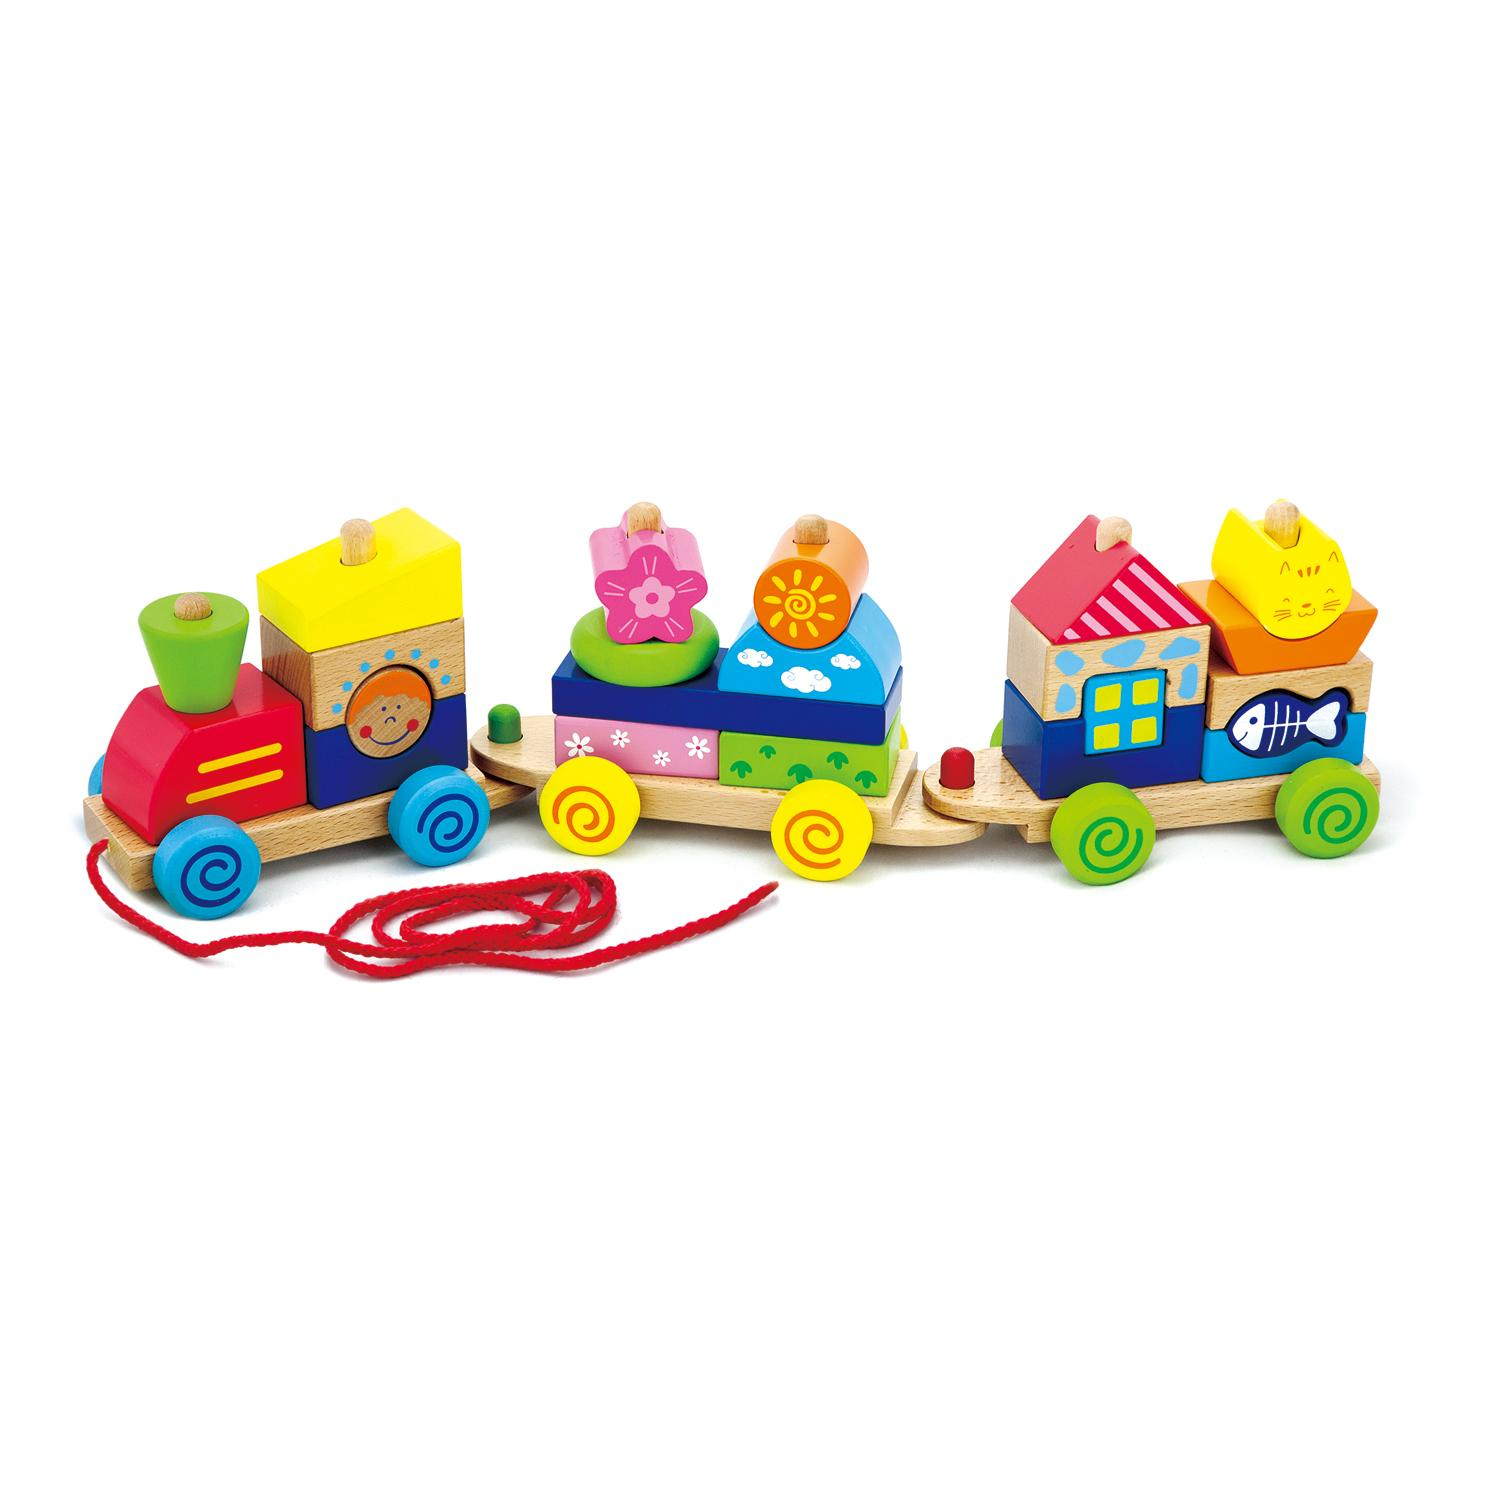 ... Building Blocks Stacking Pll-Along Childrens Kids Train Wood Play-Set